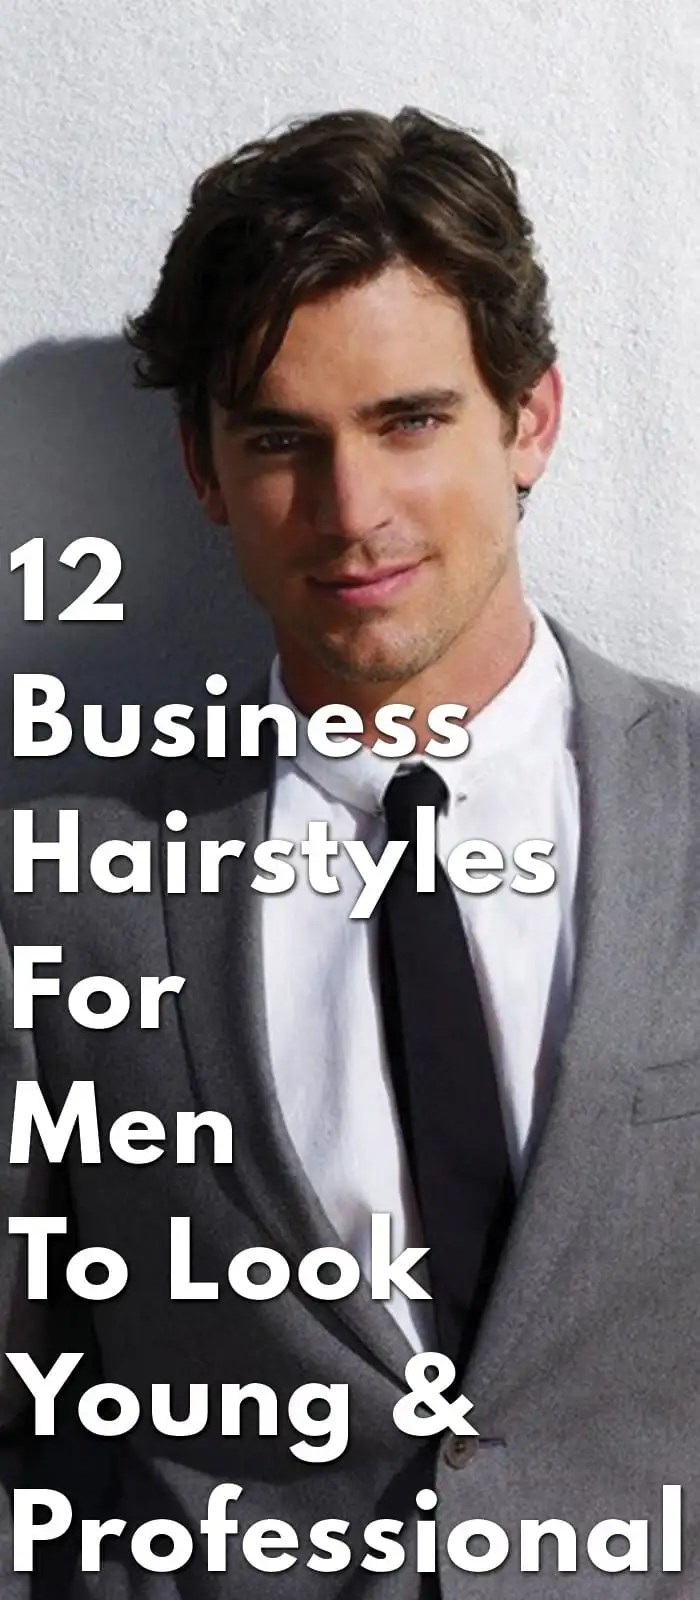 12-Business-Hairstyles-For-Men-To-Look-Young-&-Professional